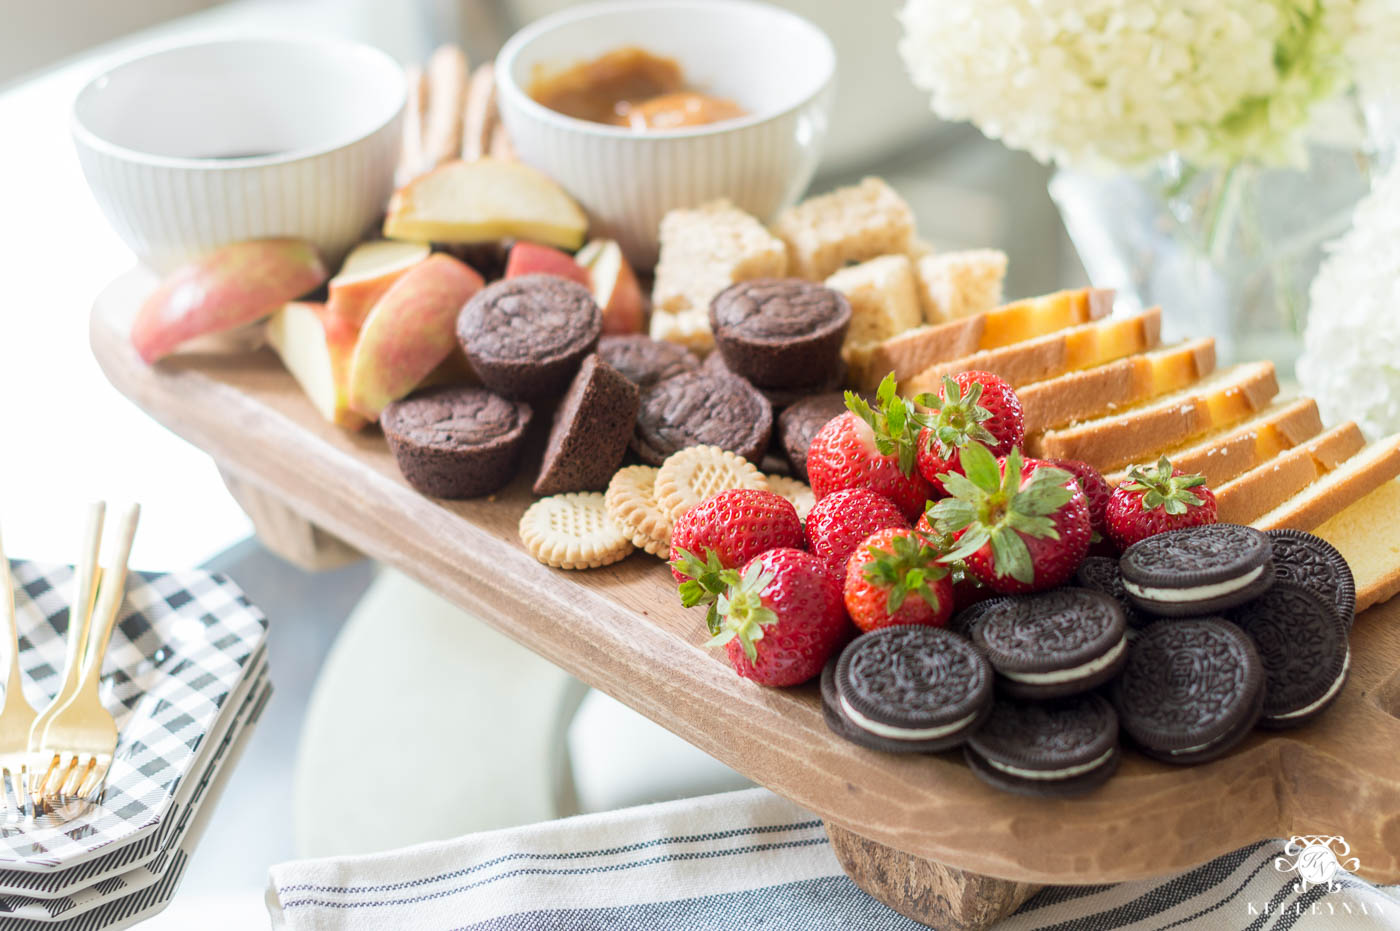 Dessert Platter Ideas with Chocolate and Caramel Dipping Sauces